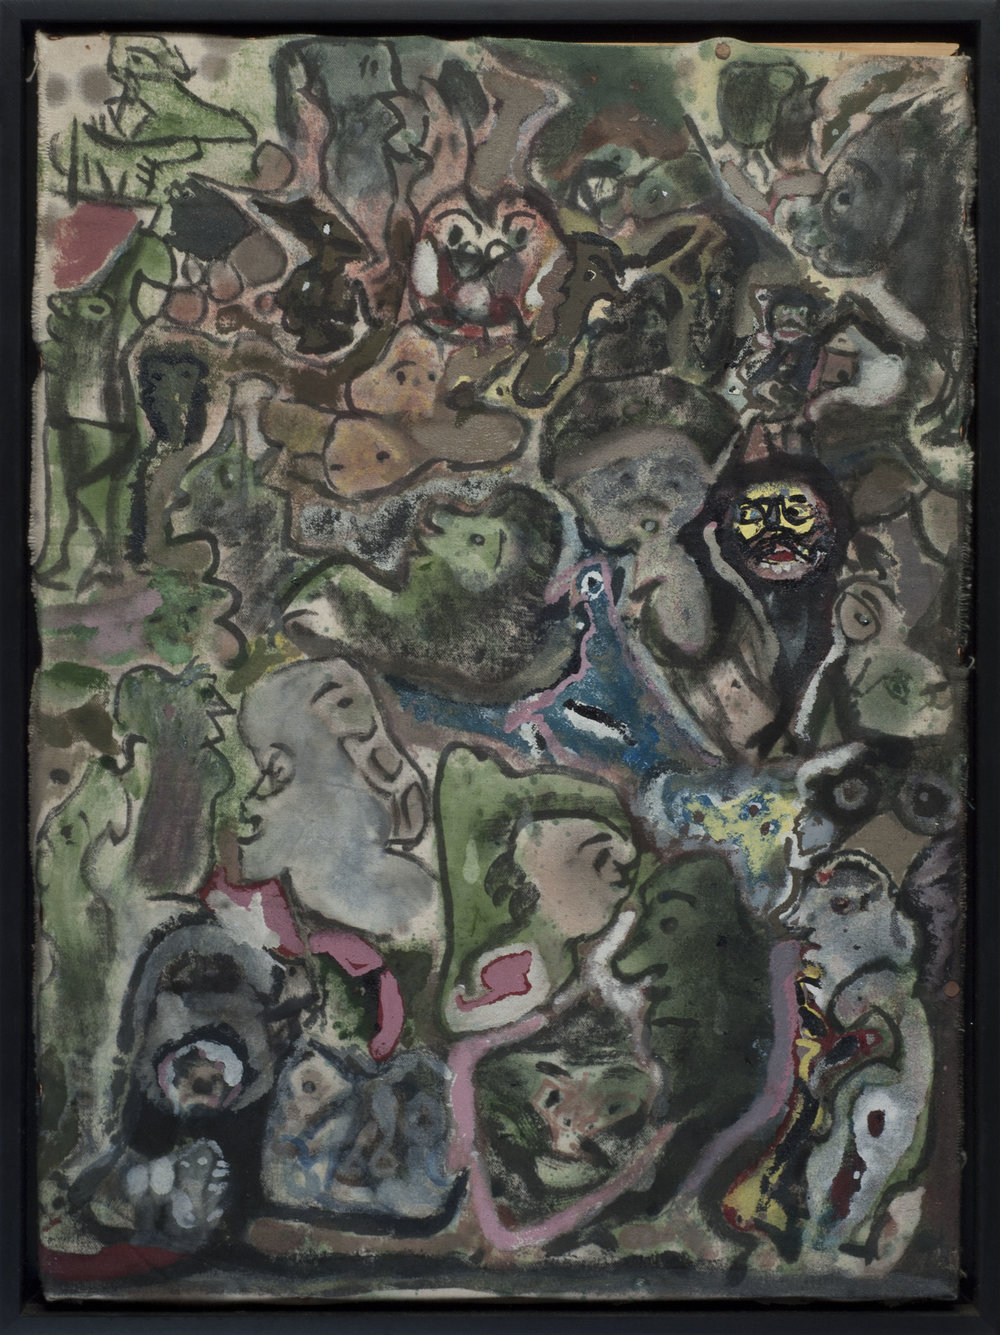 Leonard Daley Yellow Face, 1992 Mixed media on canvas 21.5 x 15.5 inches 54.6 x 39.4 cm LE  39